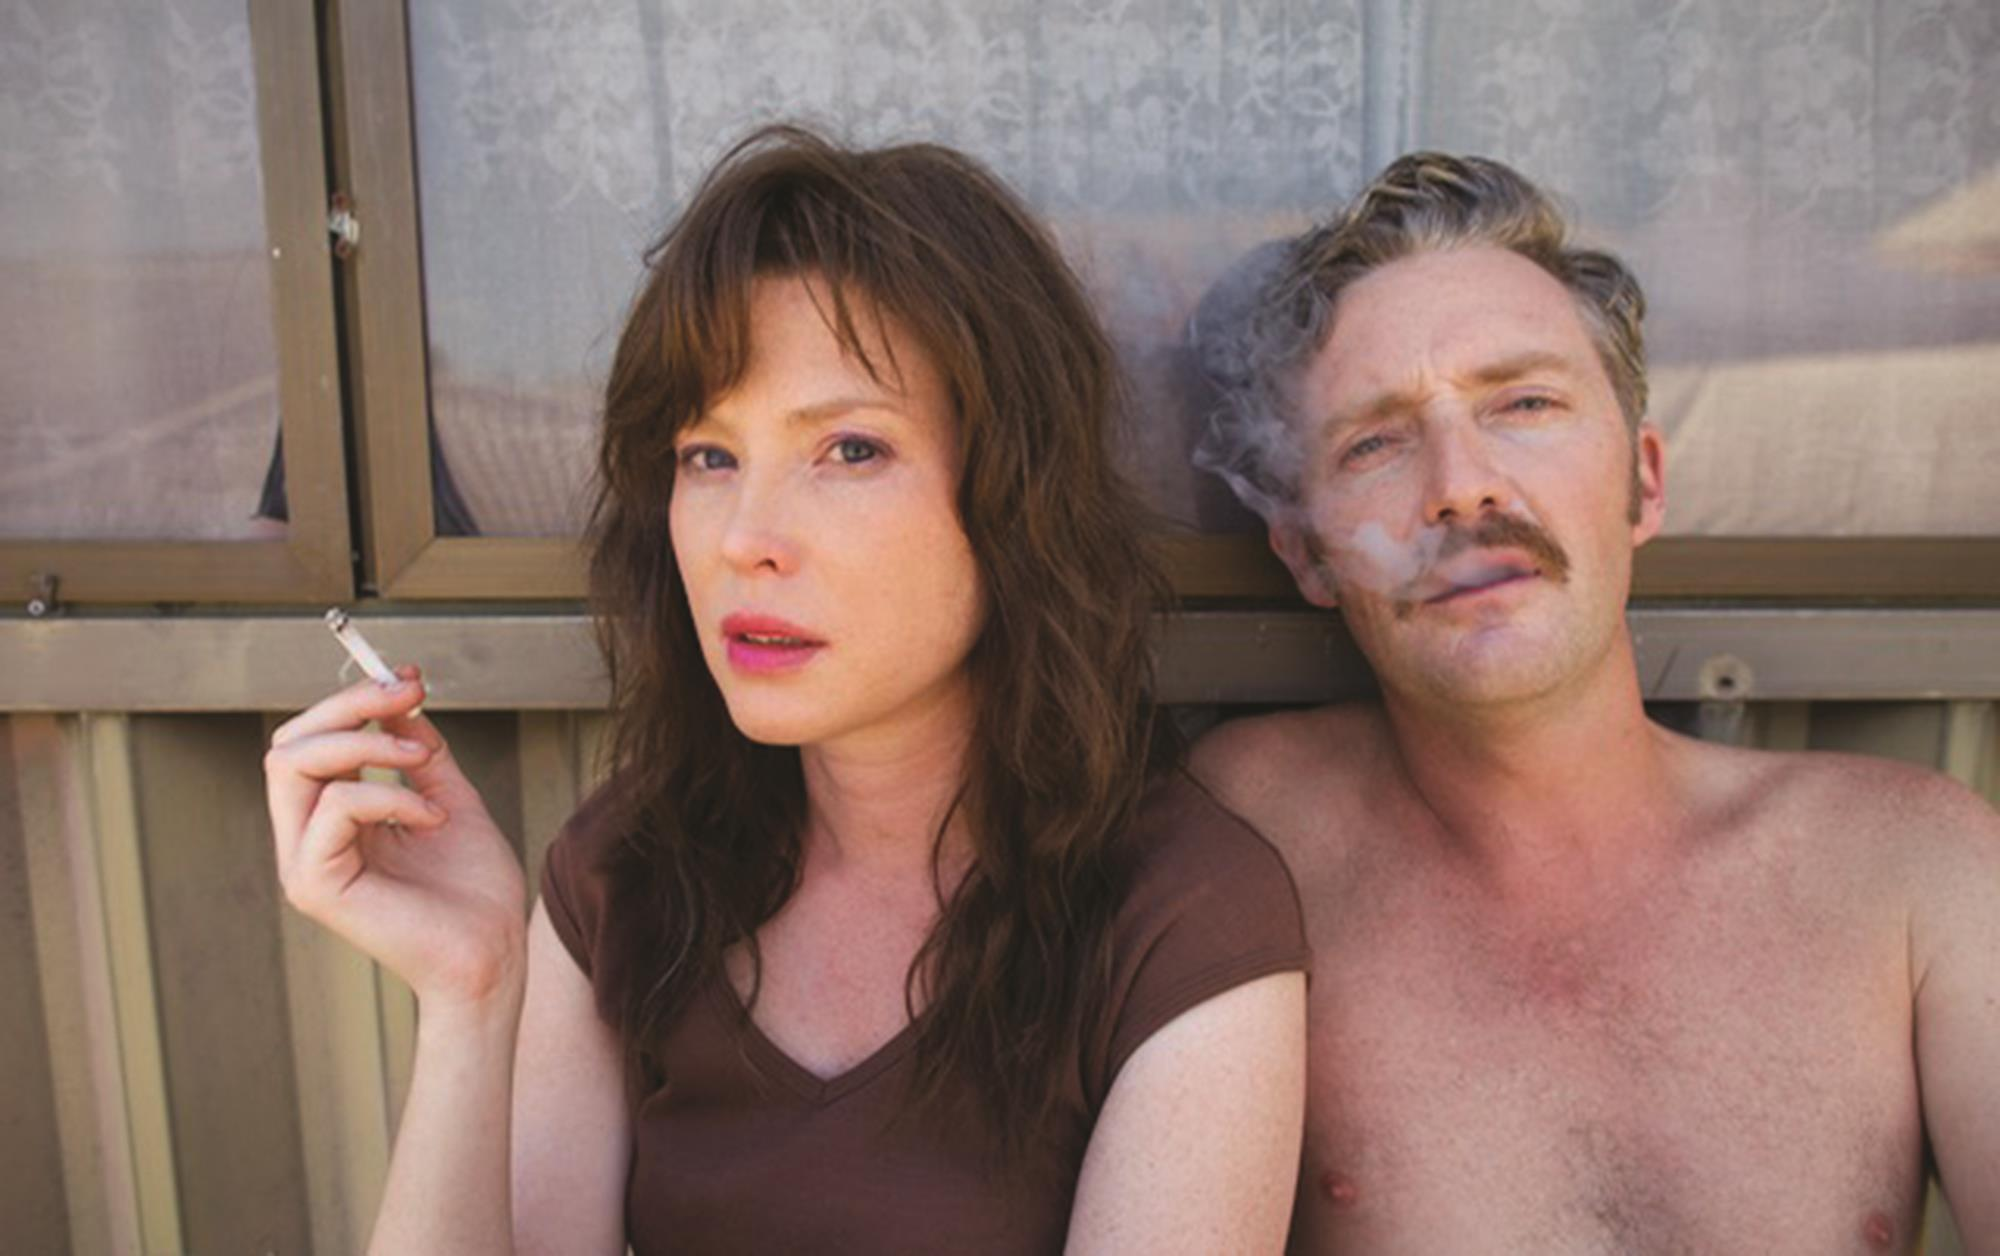 The abductors - Emma Booth and John White in Hounds of Love (2016)